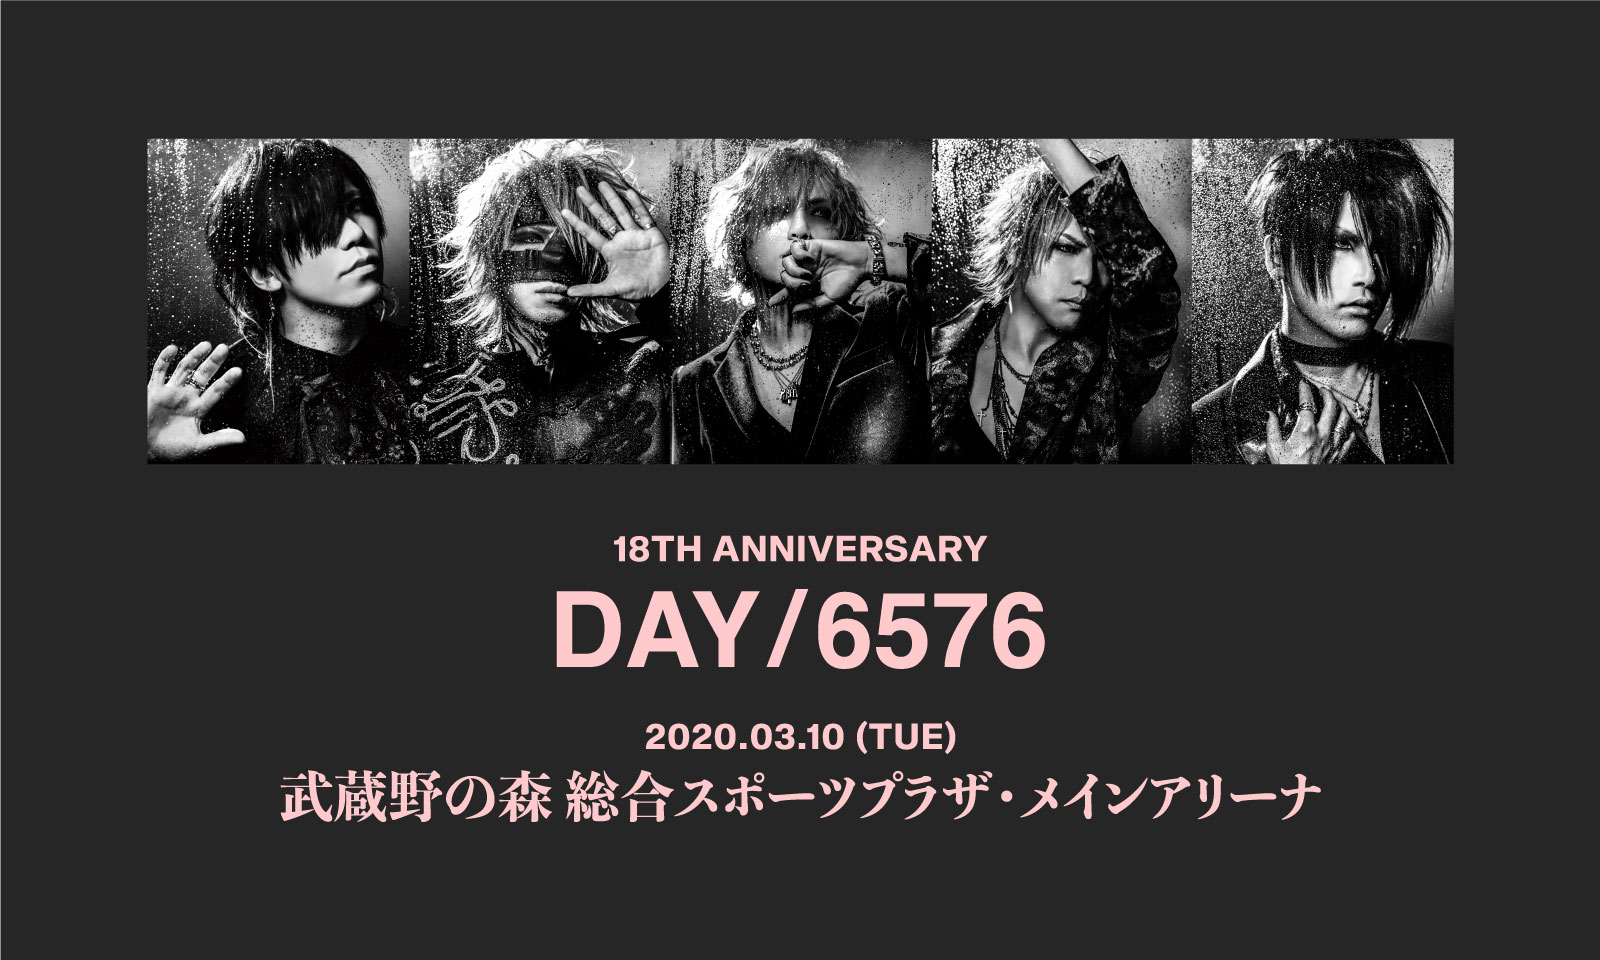 the GazettE 18TH ANNIVERSARY DAY/6576